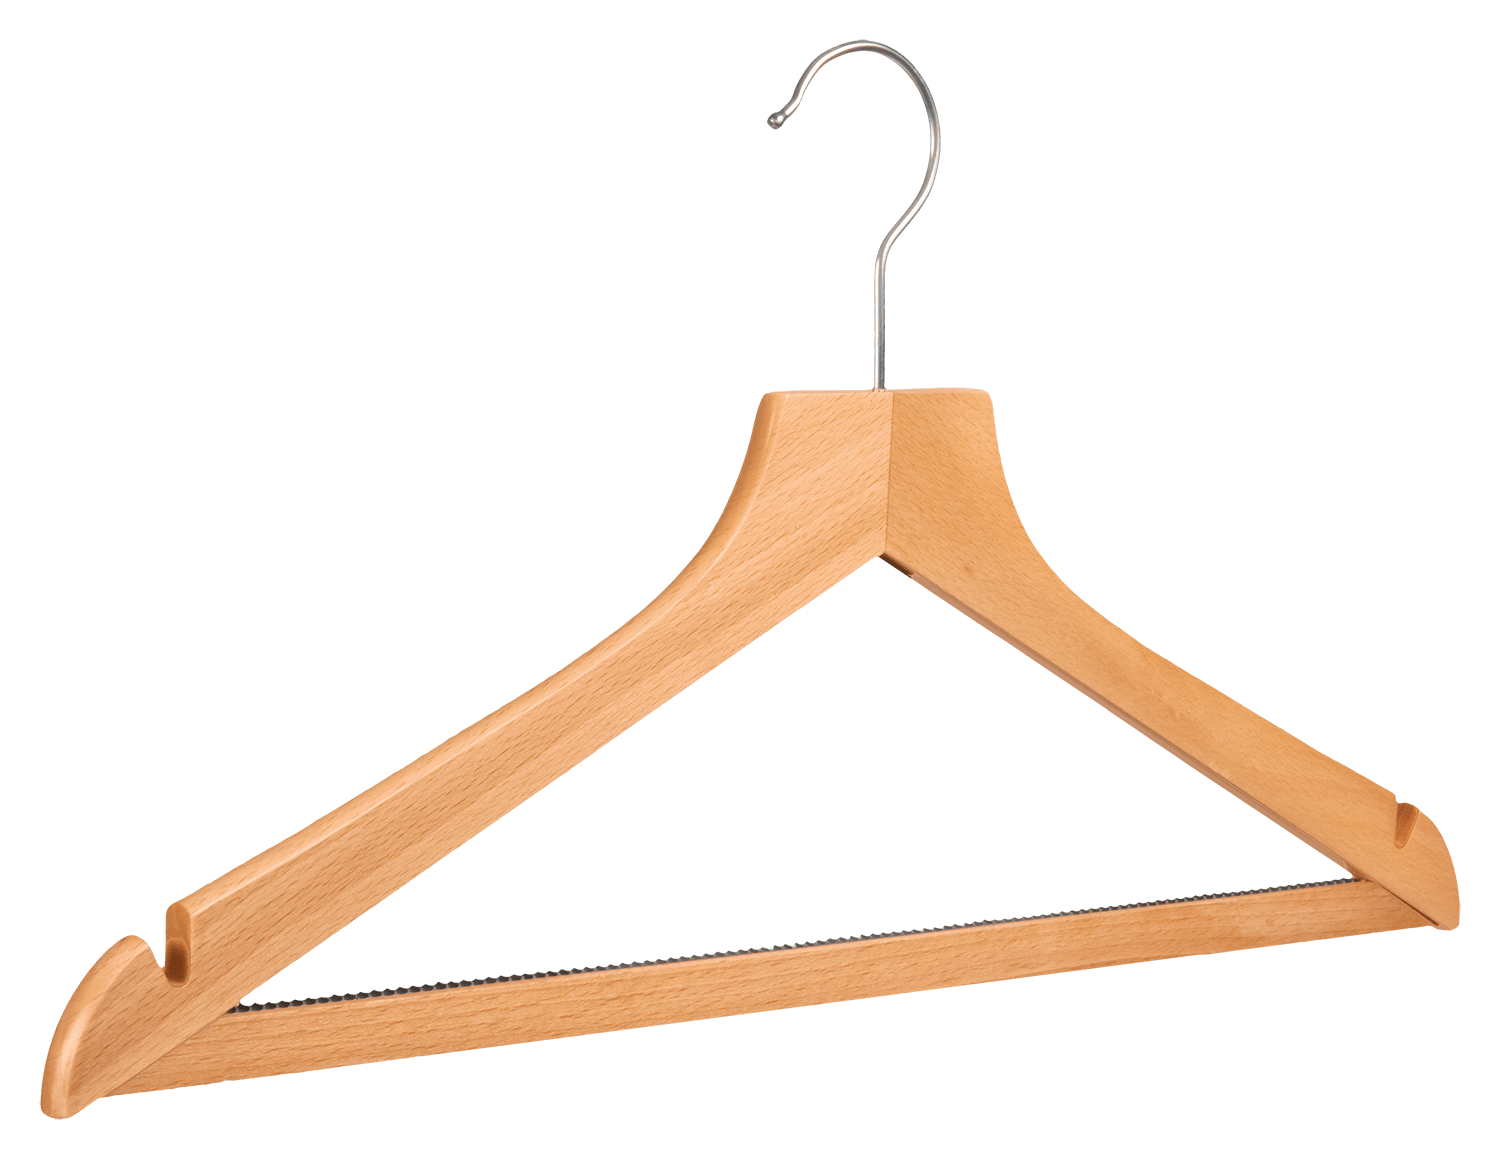 Clothes hanger png. Wooden transparent stickpng download